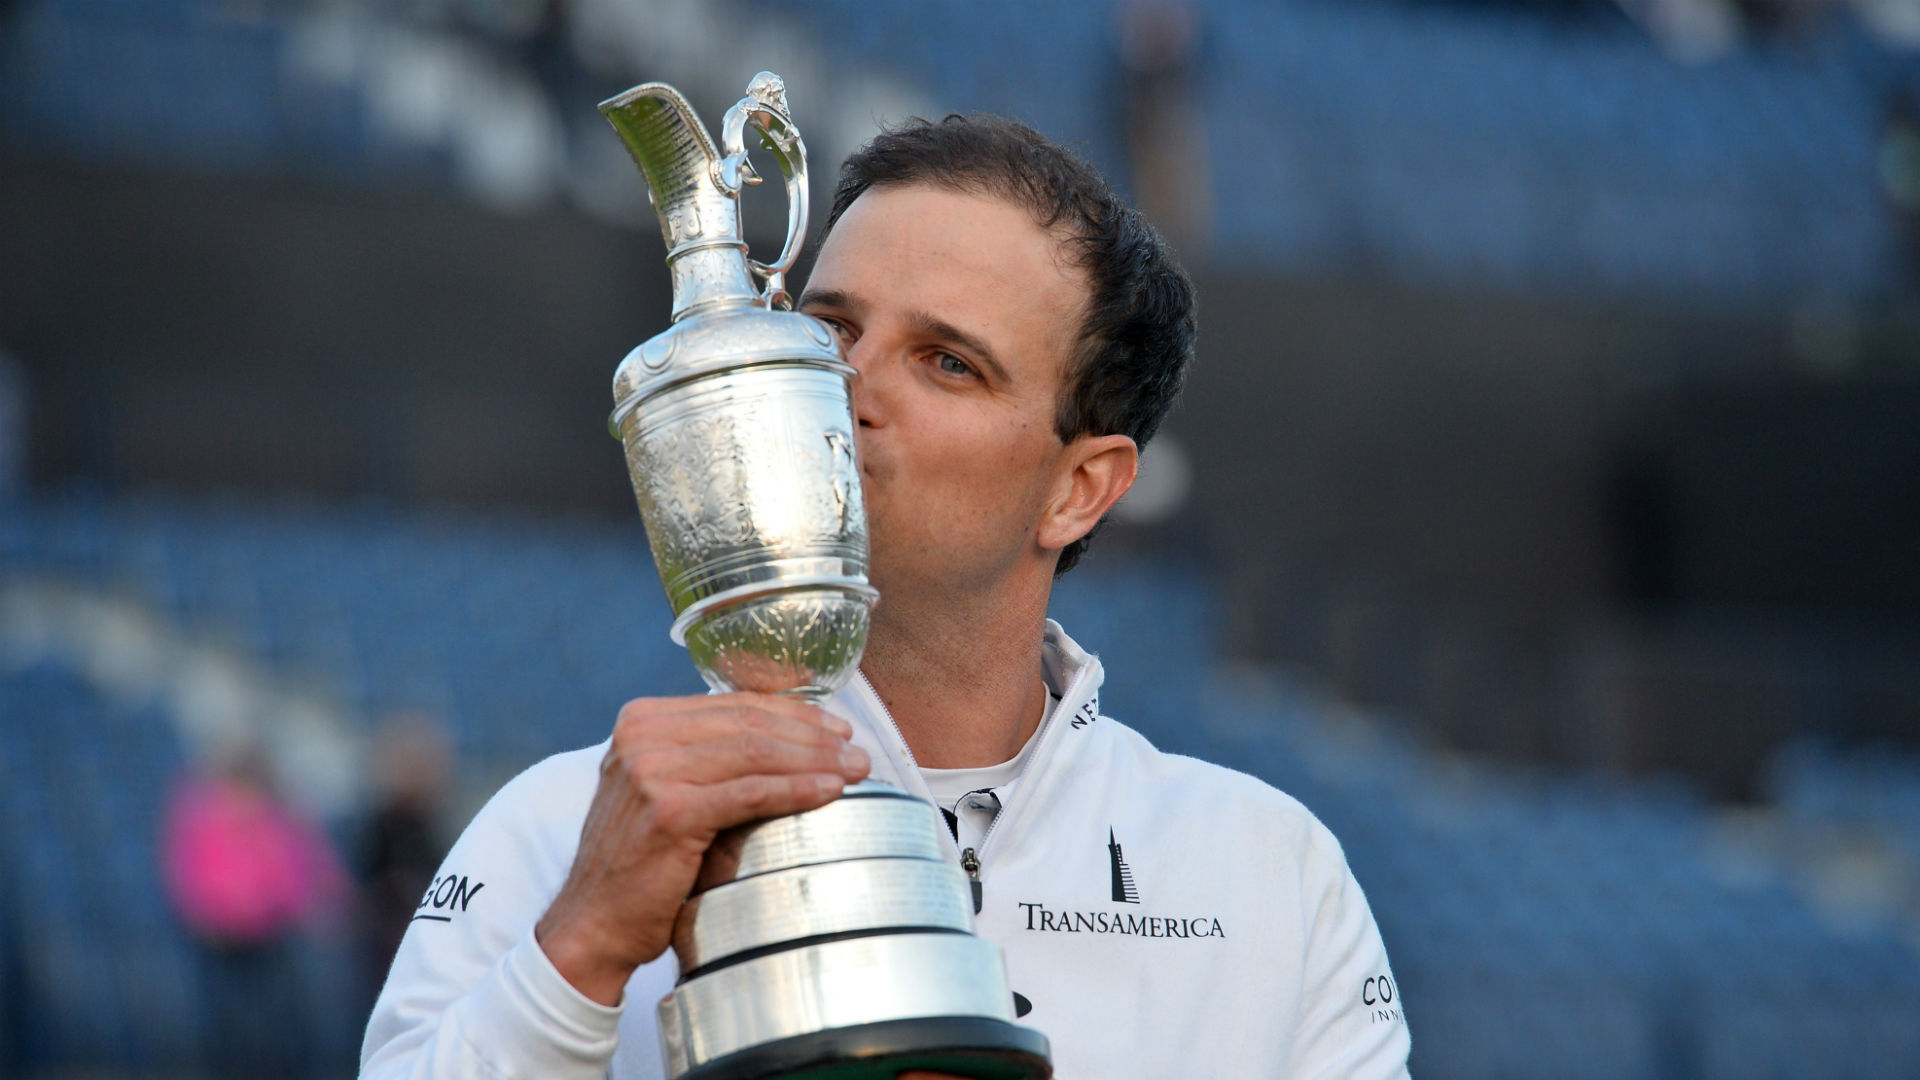 Defending Open champ Zach Johnson turns in claret jug